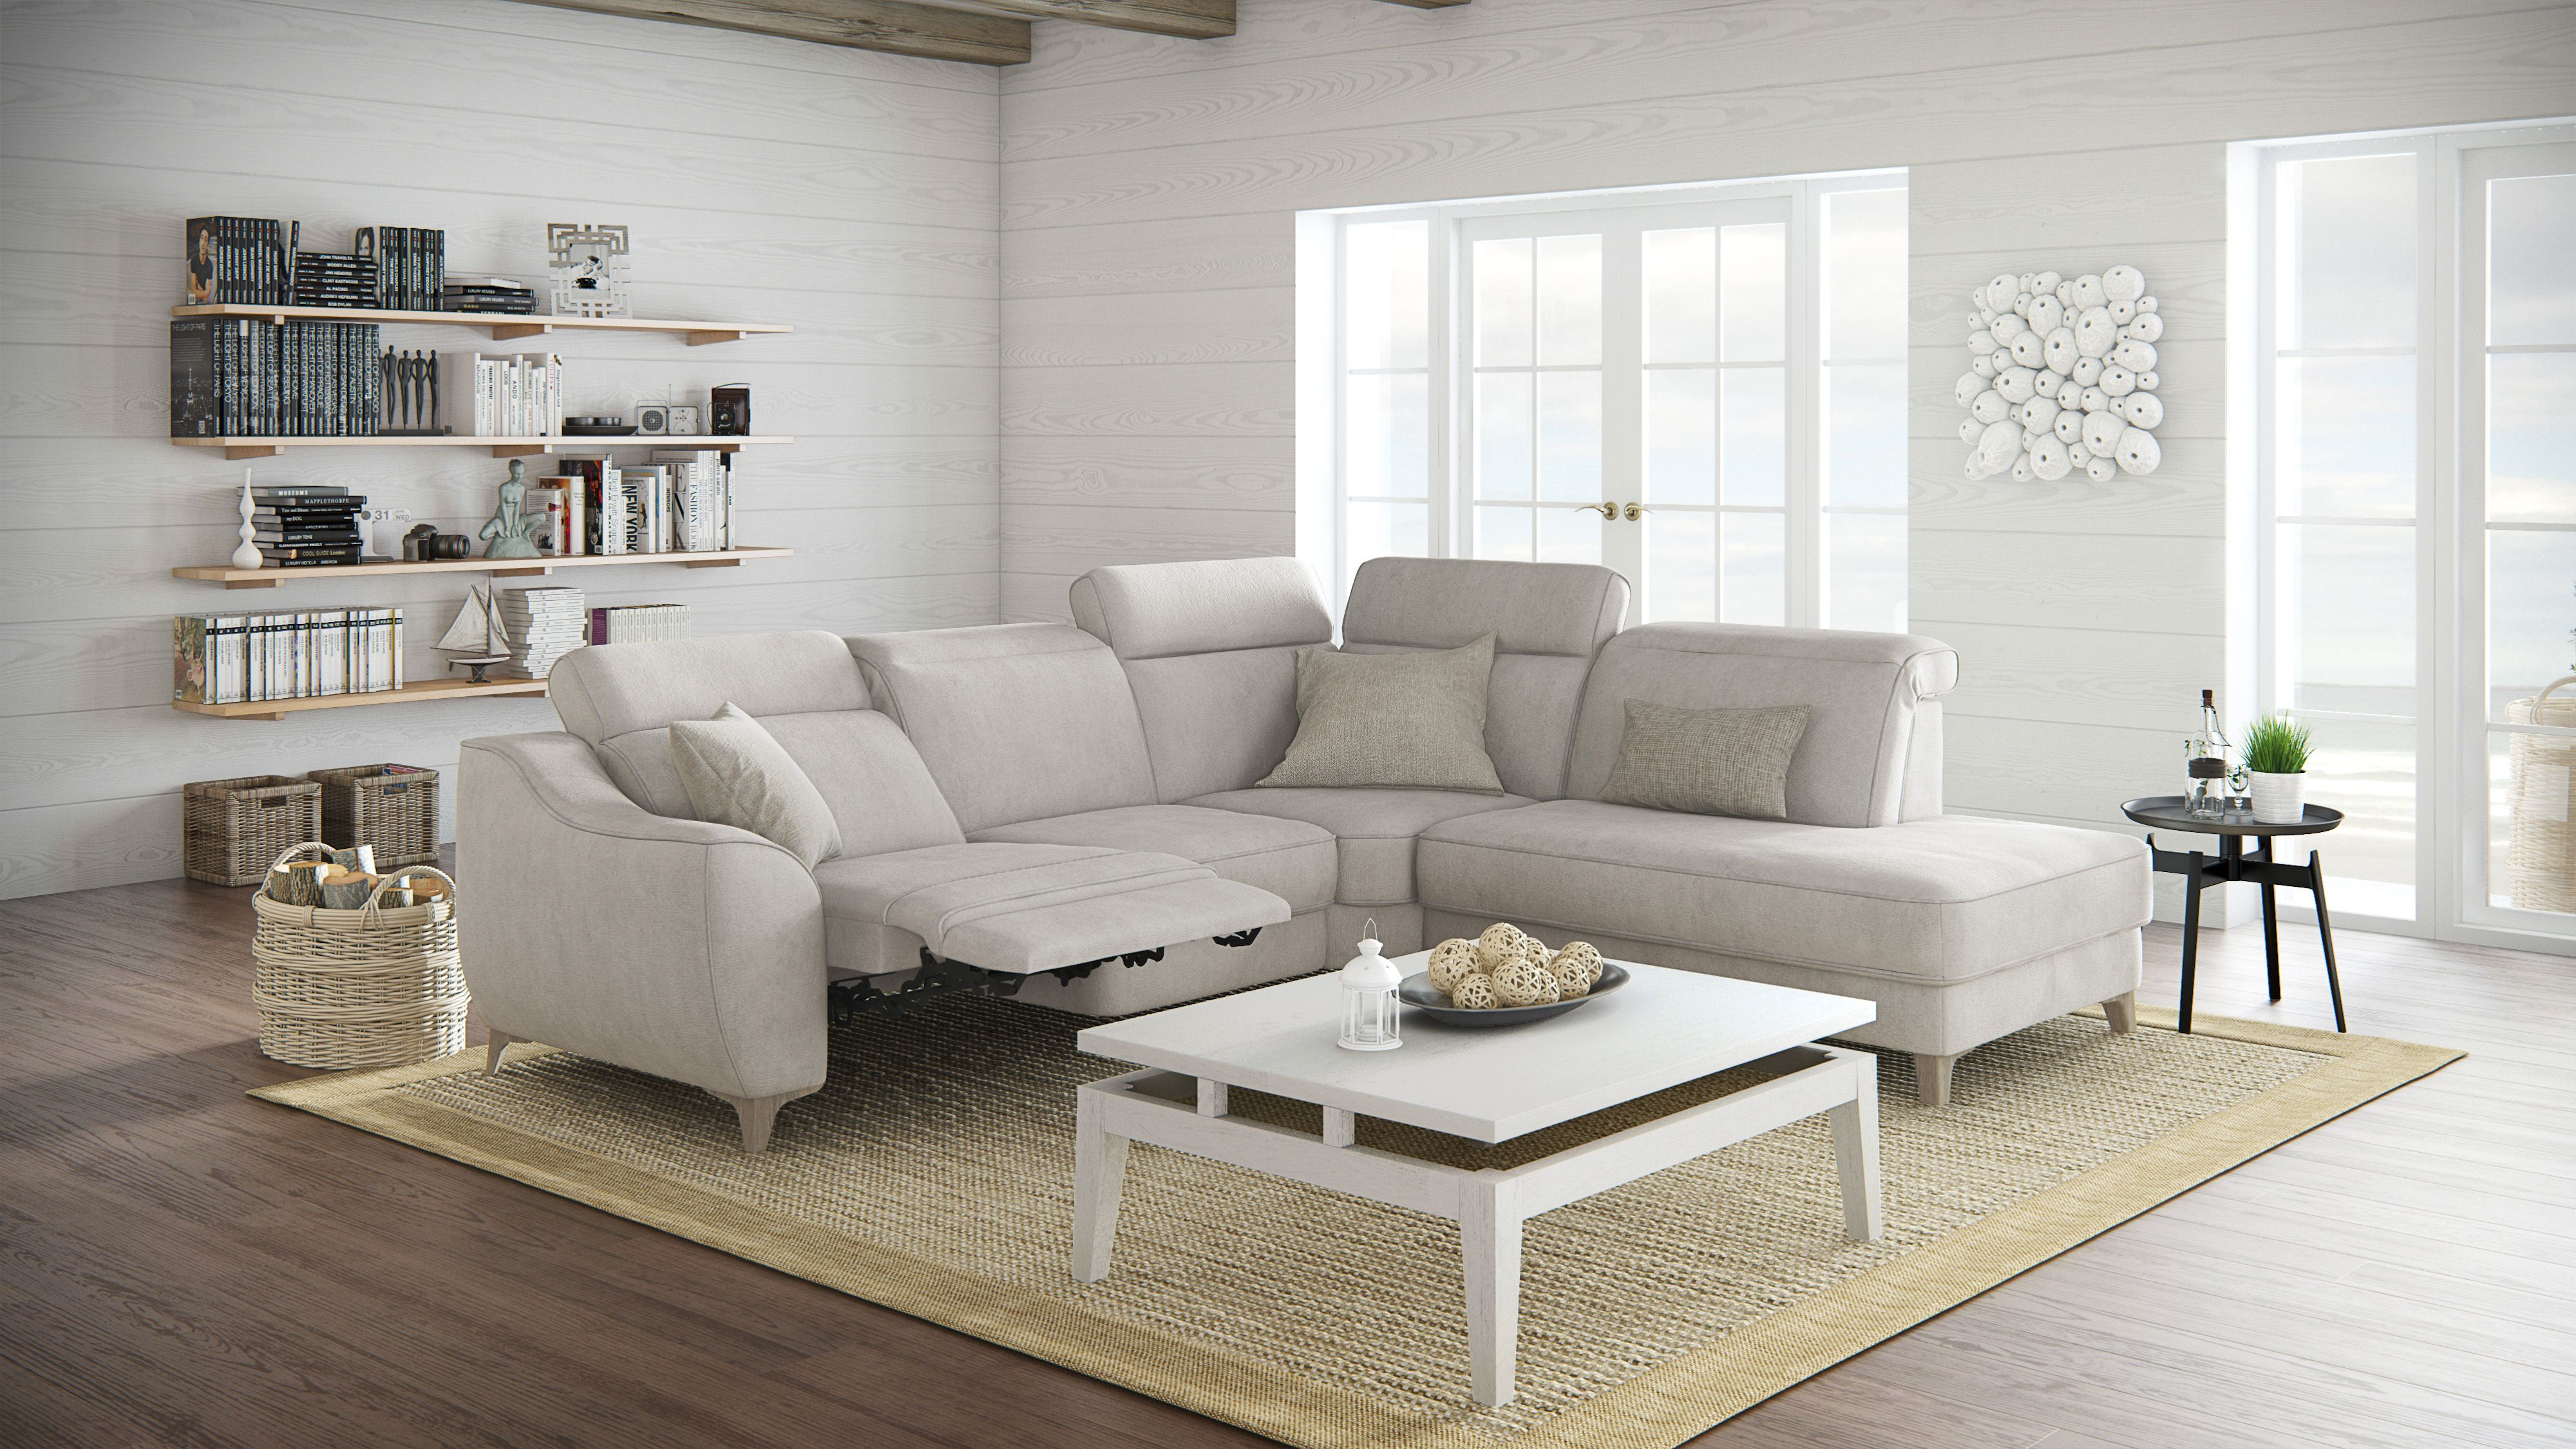 designed with versatility and style in mind diana sofa from rom